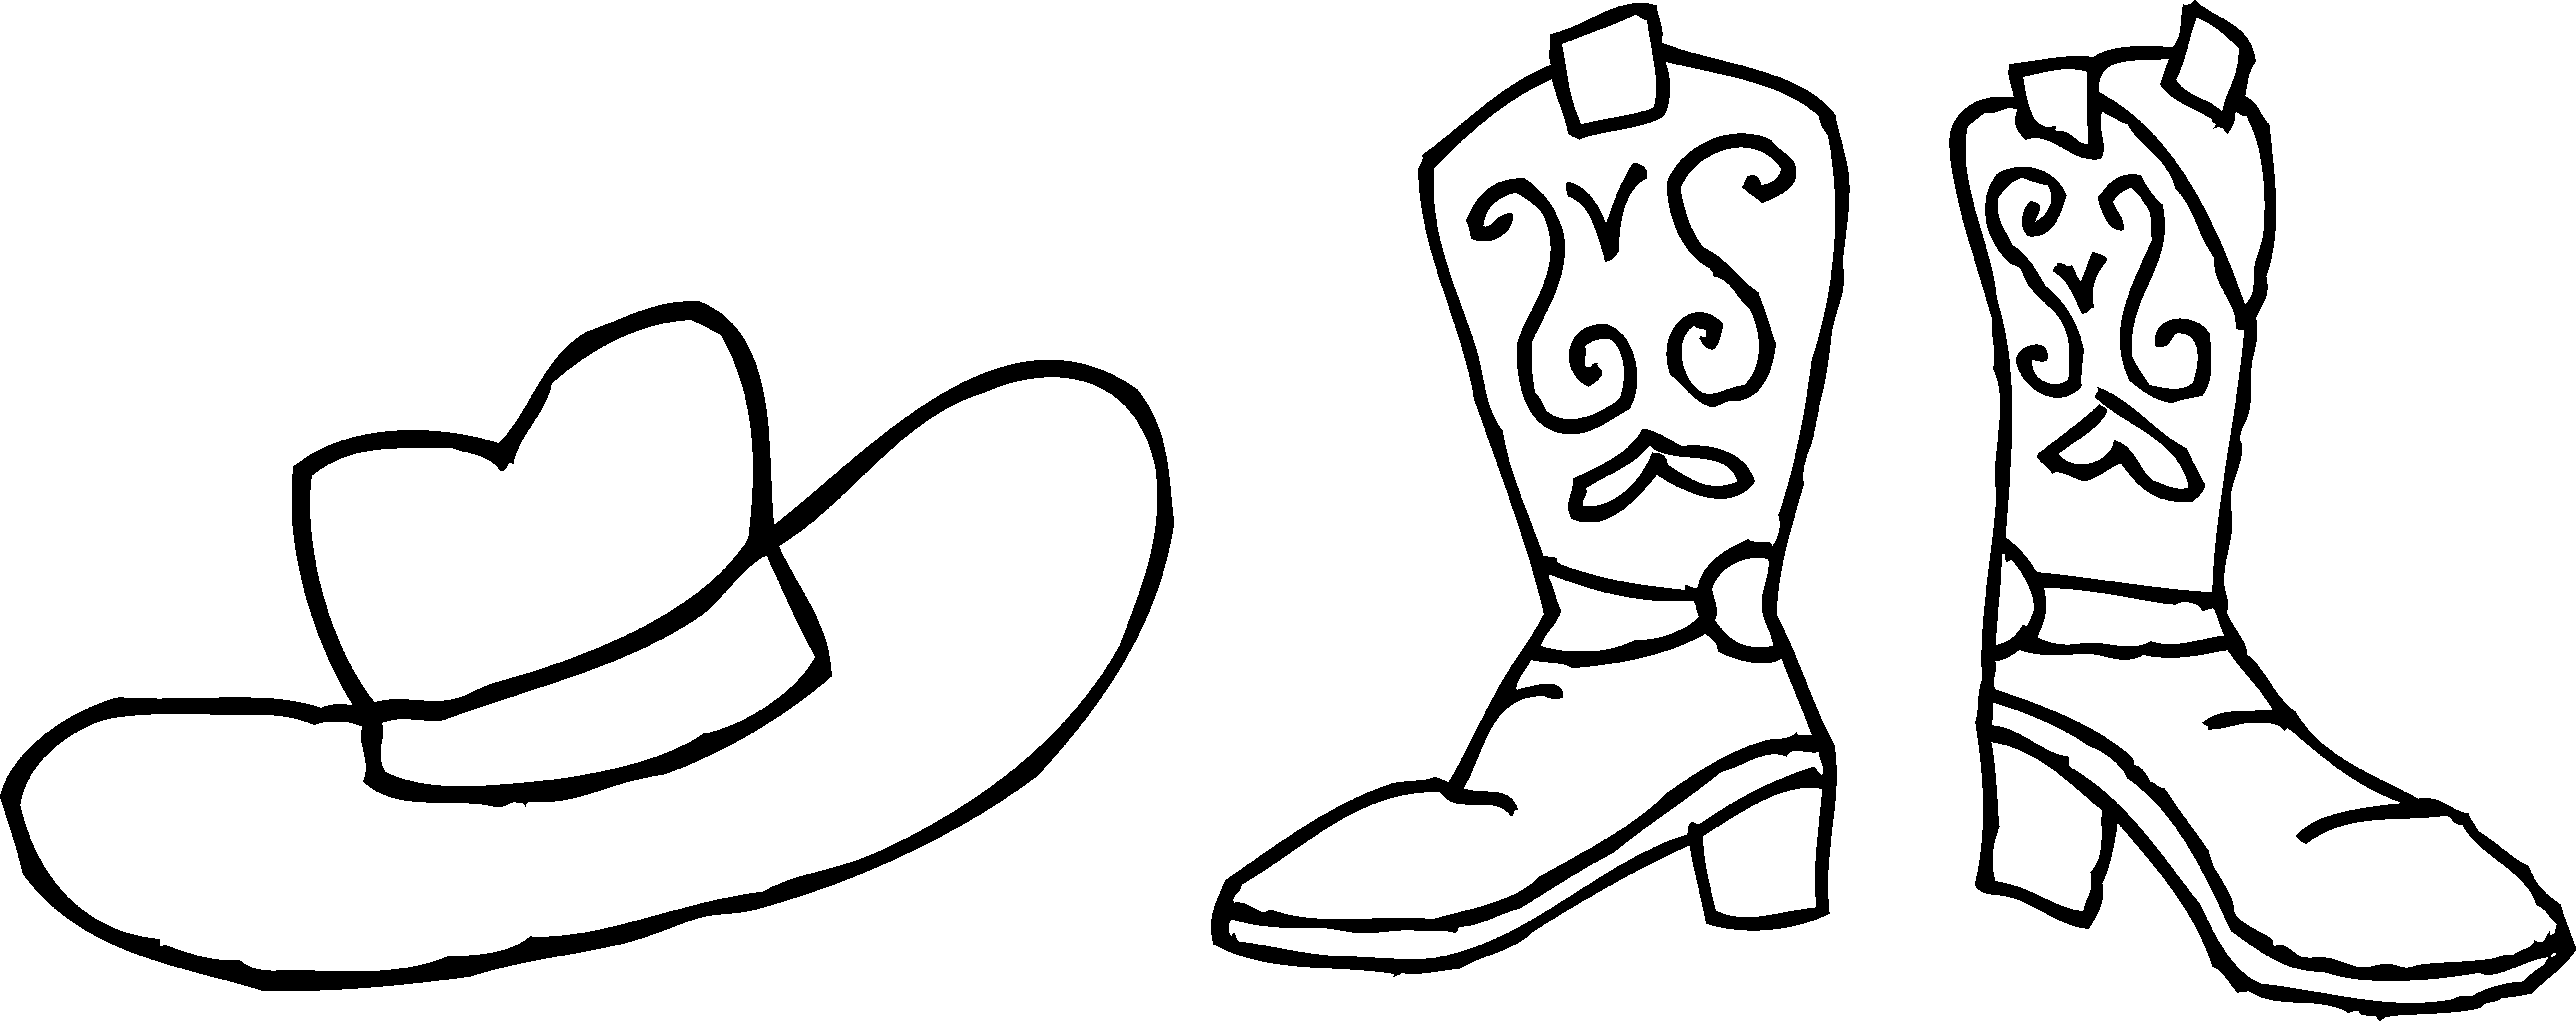 Cowboys boots clipart with crown transparent stock Cowboy Hat And Boots Drawing at GetDrawings.com | Free for personal ... transparent stock